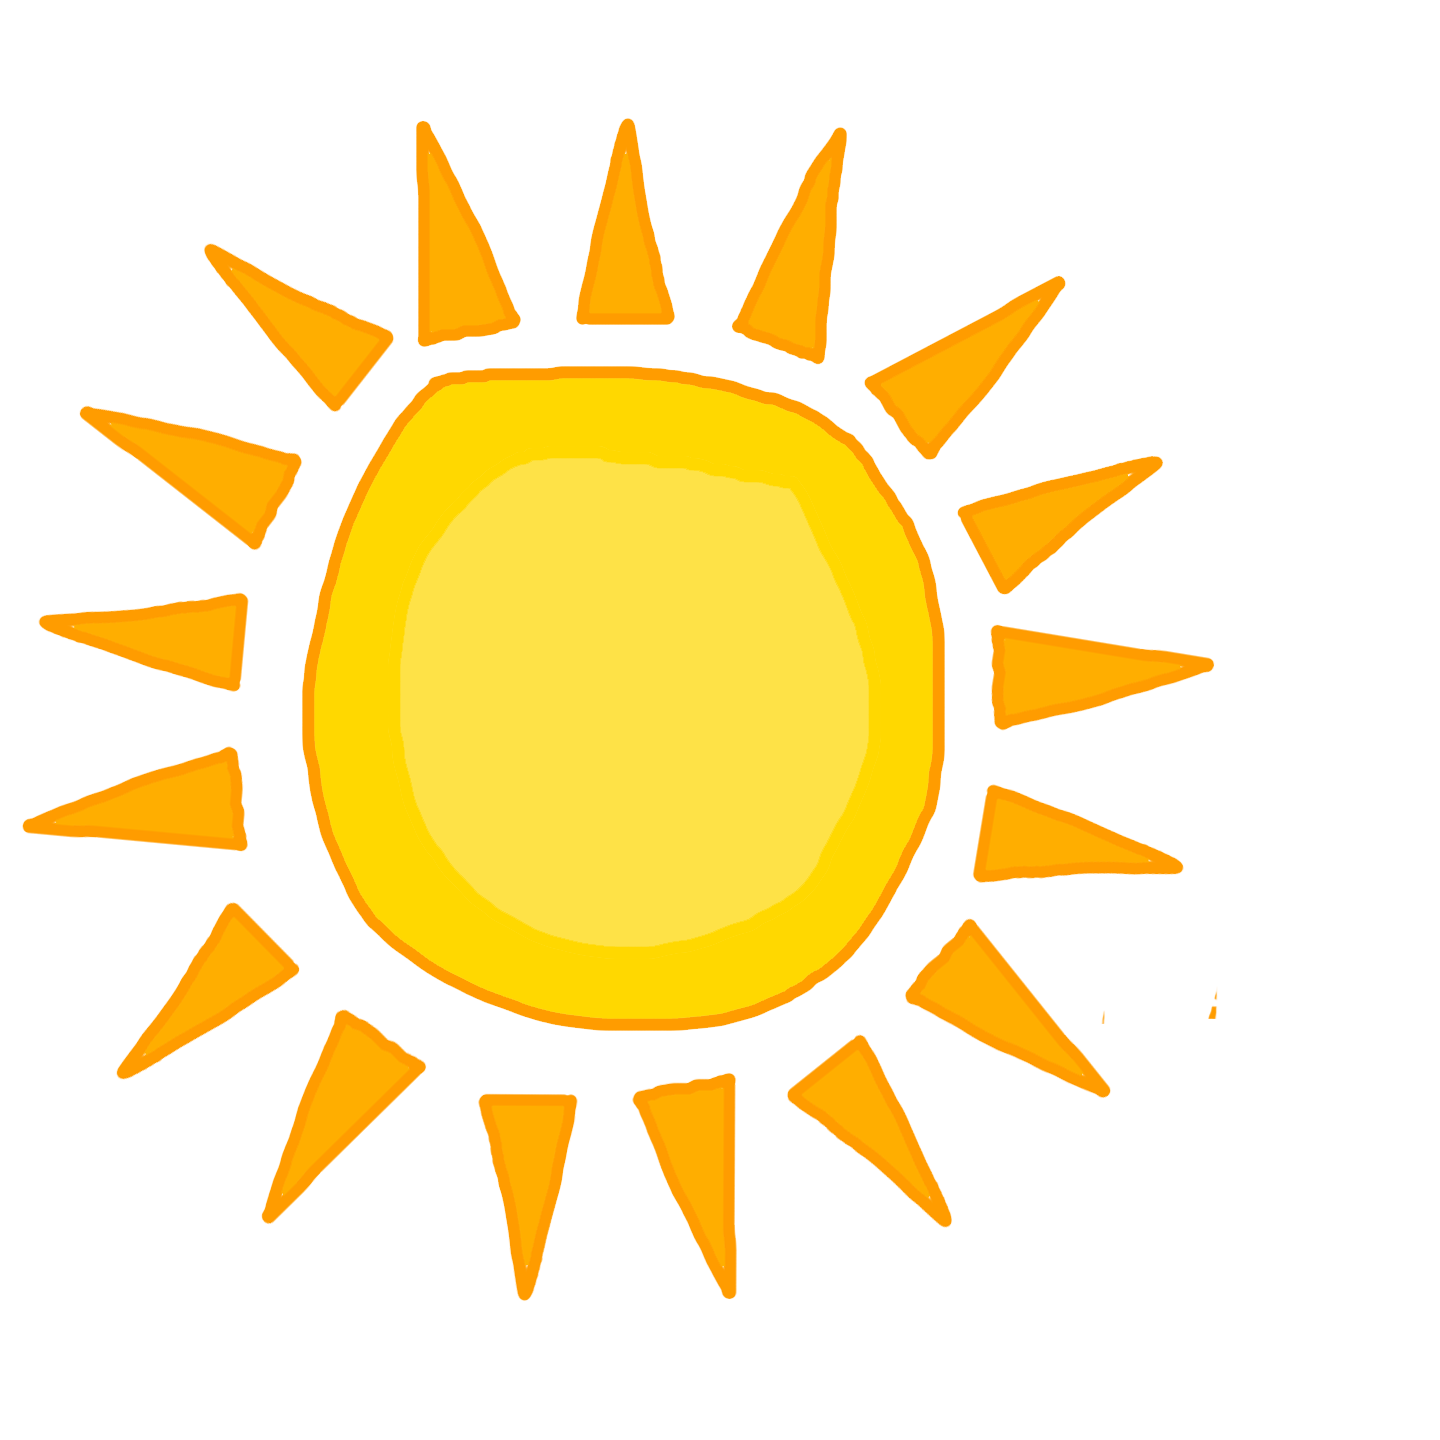 Happy sun clipart no background svg freeuse library Sun PNG Transparent Sun.PNG Images. | PlusPNG svg freeuse library